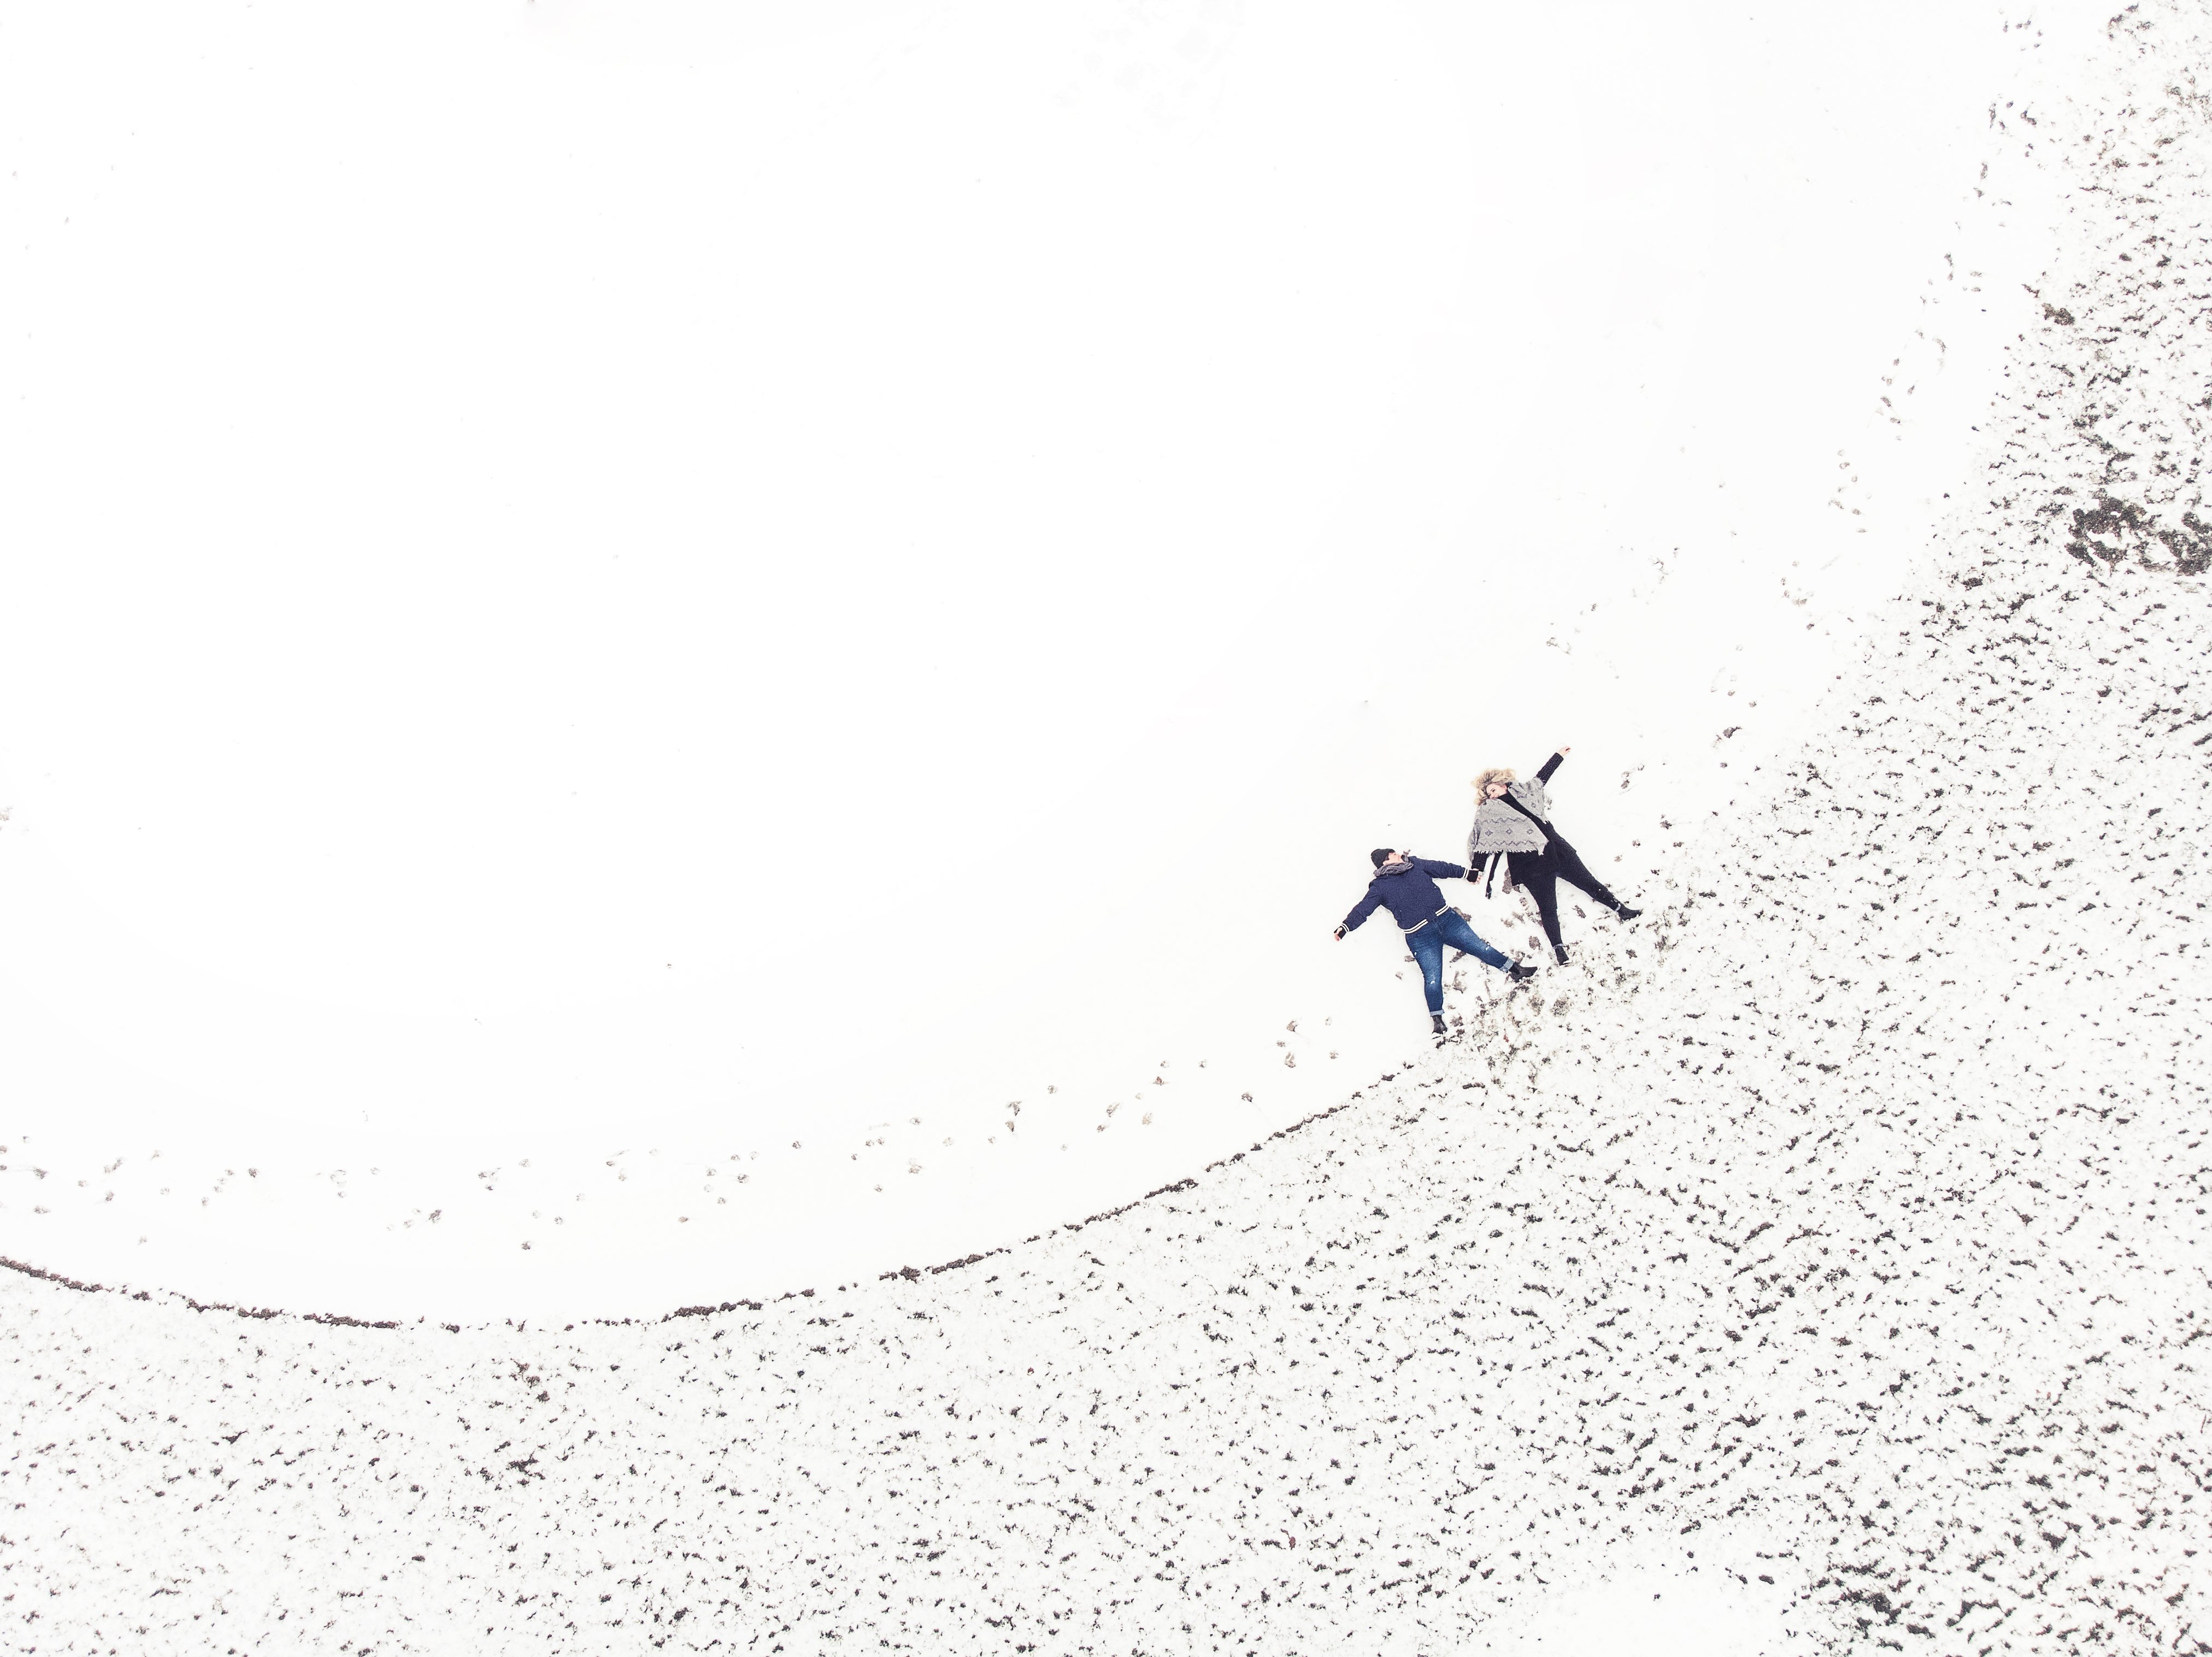 two-women-making-snow-angels_Photo by Samantha Hurley from Burst